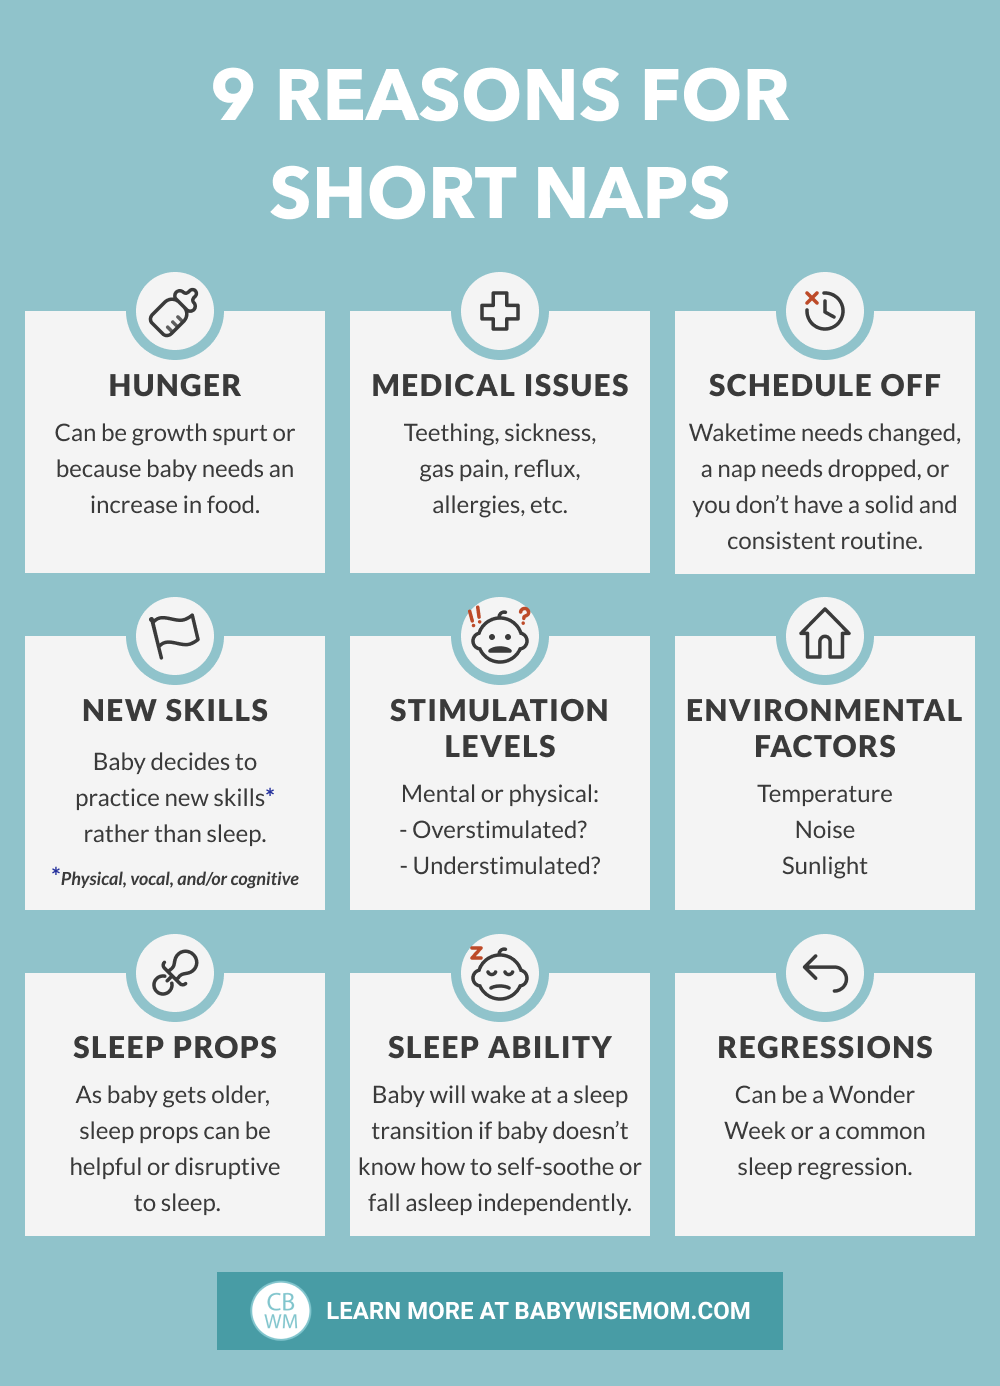 9 reasons for short naps